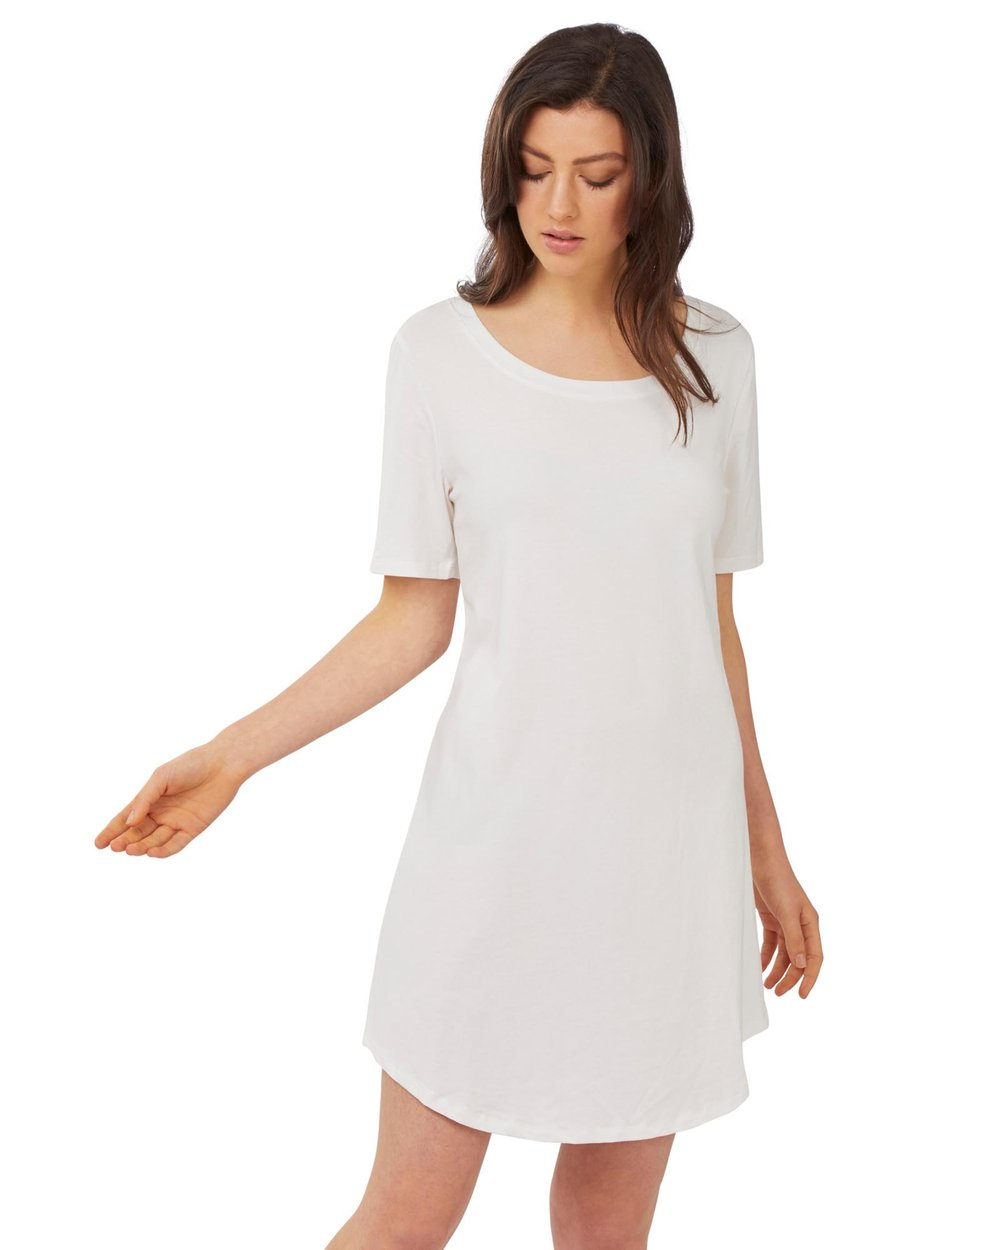 030bf0519d T Shirt Nightie by Project REM Online